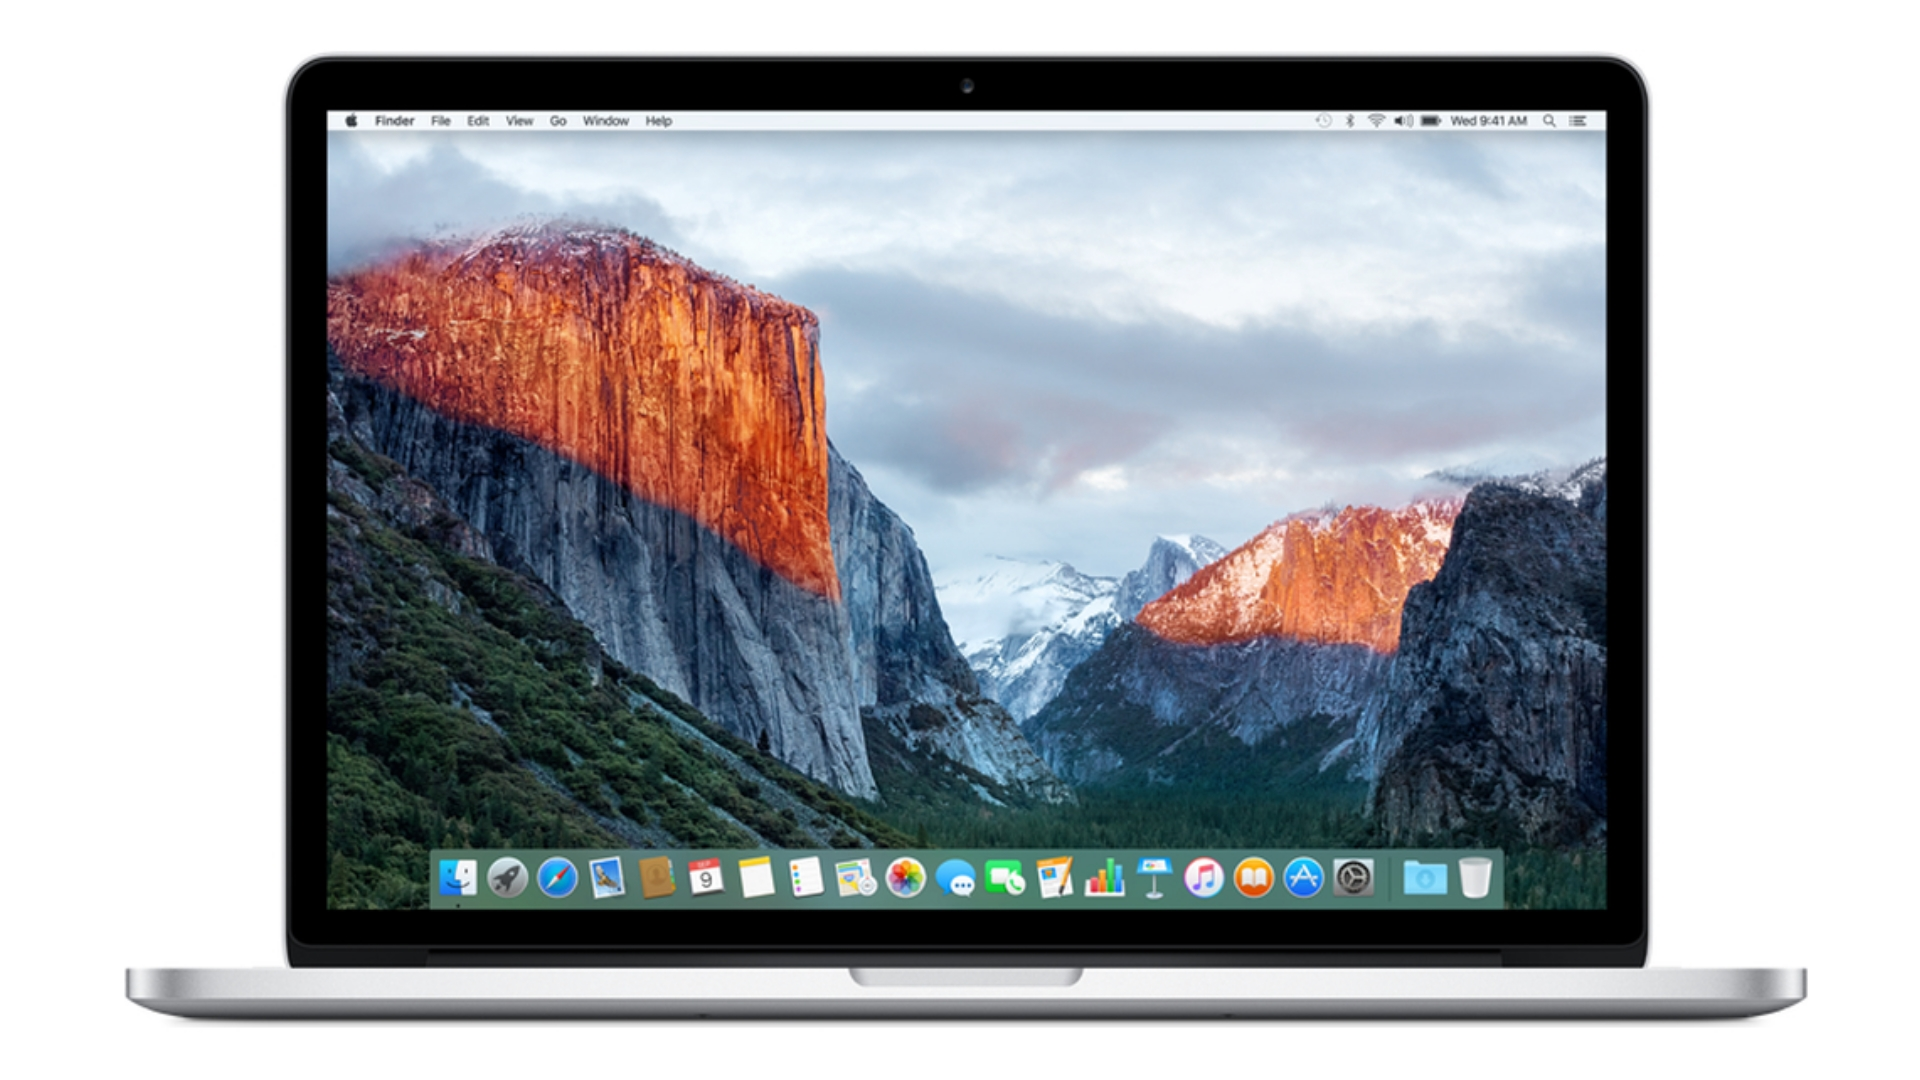 The best cheap MacBook deals on Amazon Prime Day 2018 1531341524_920_the-best-cheap-macbook-deals-on-amazon-prime-day-2018